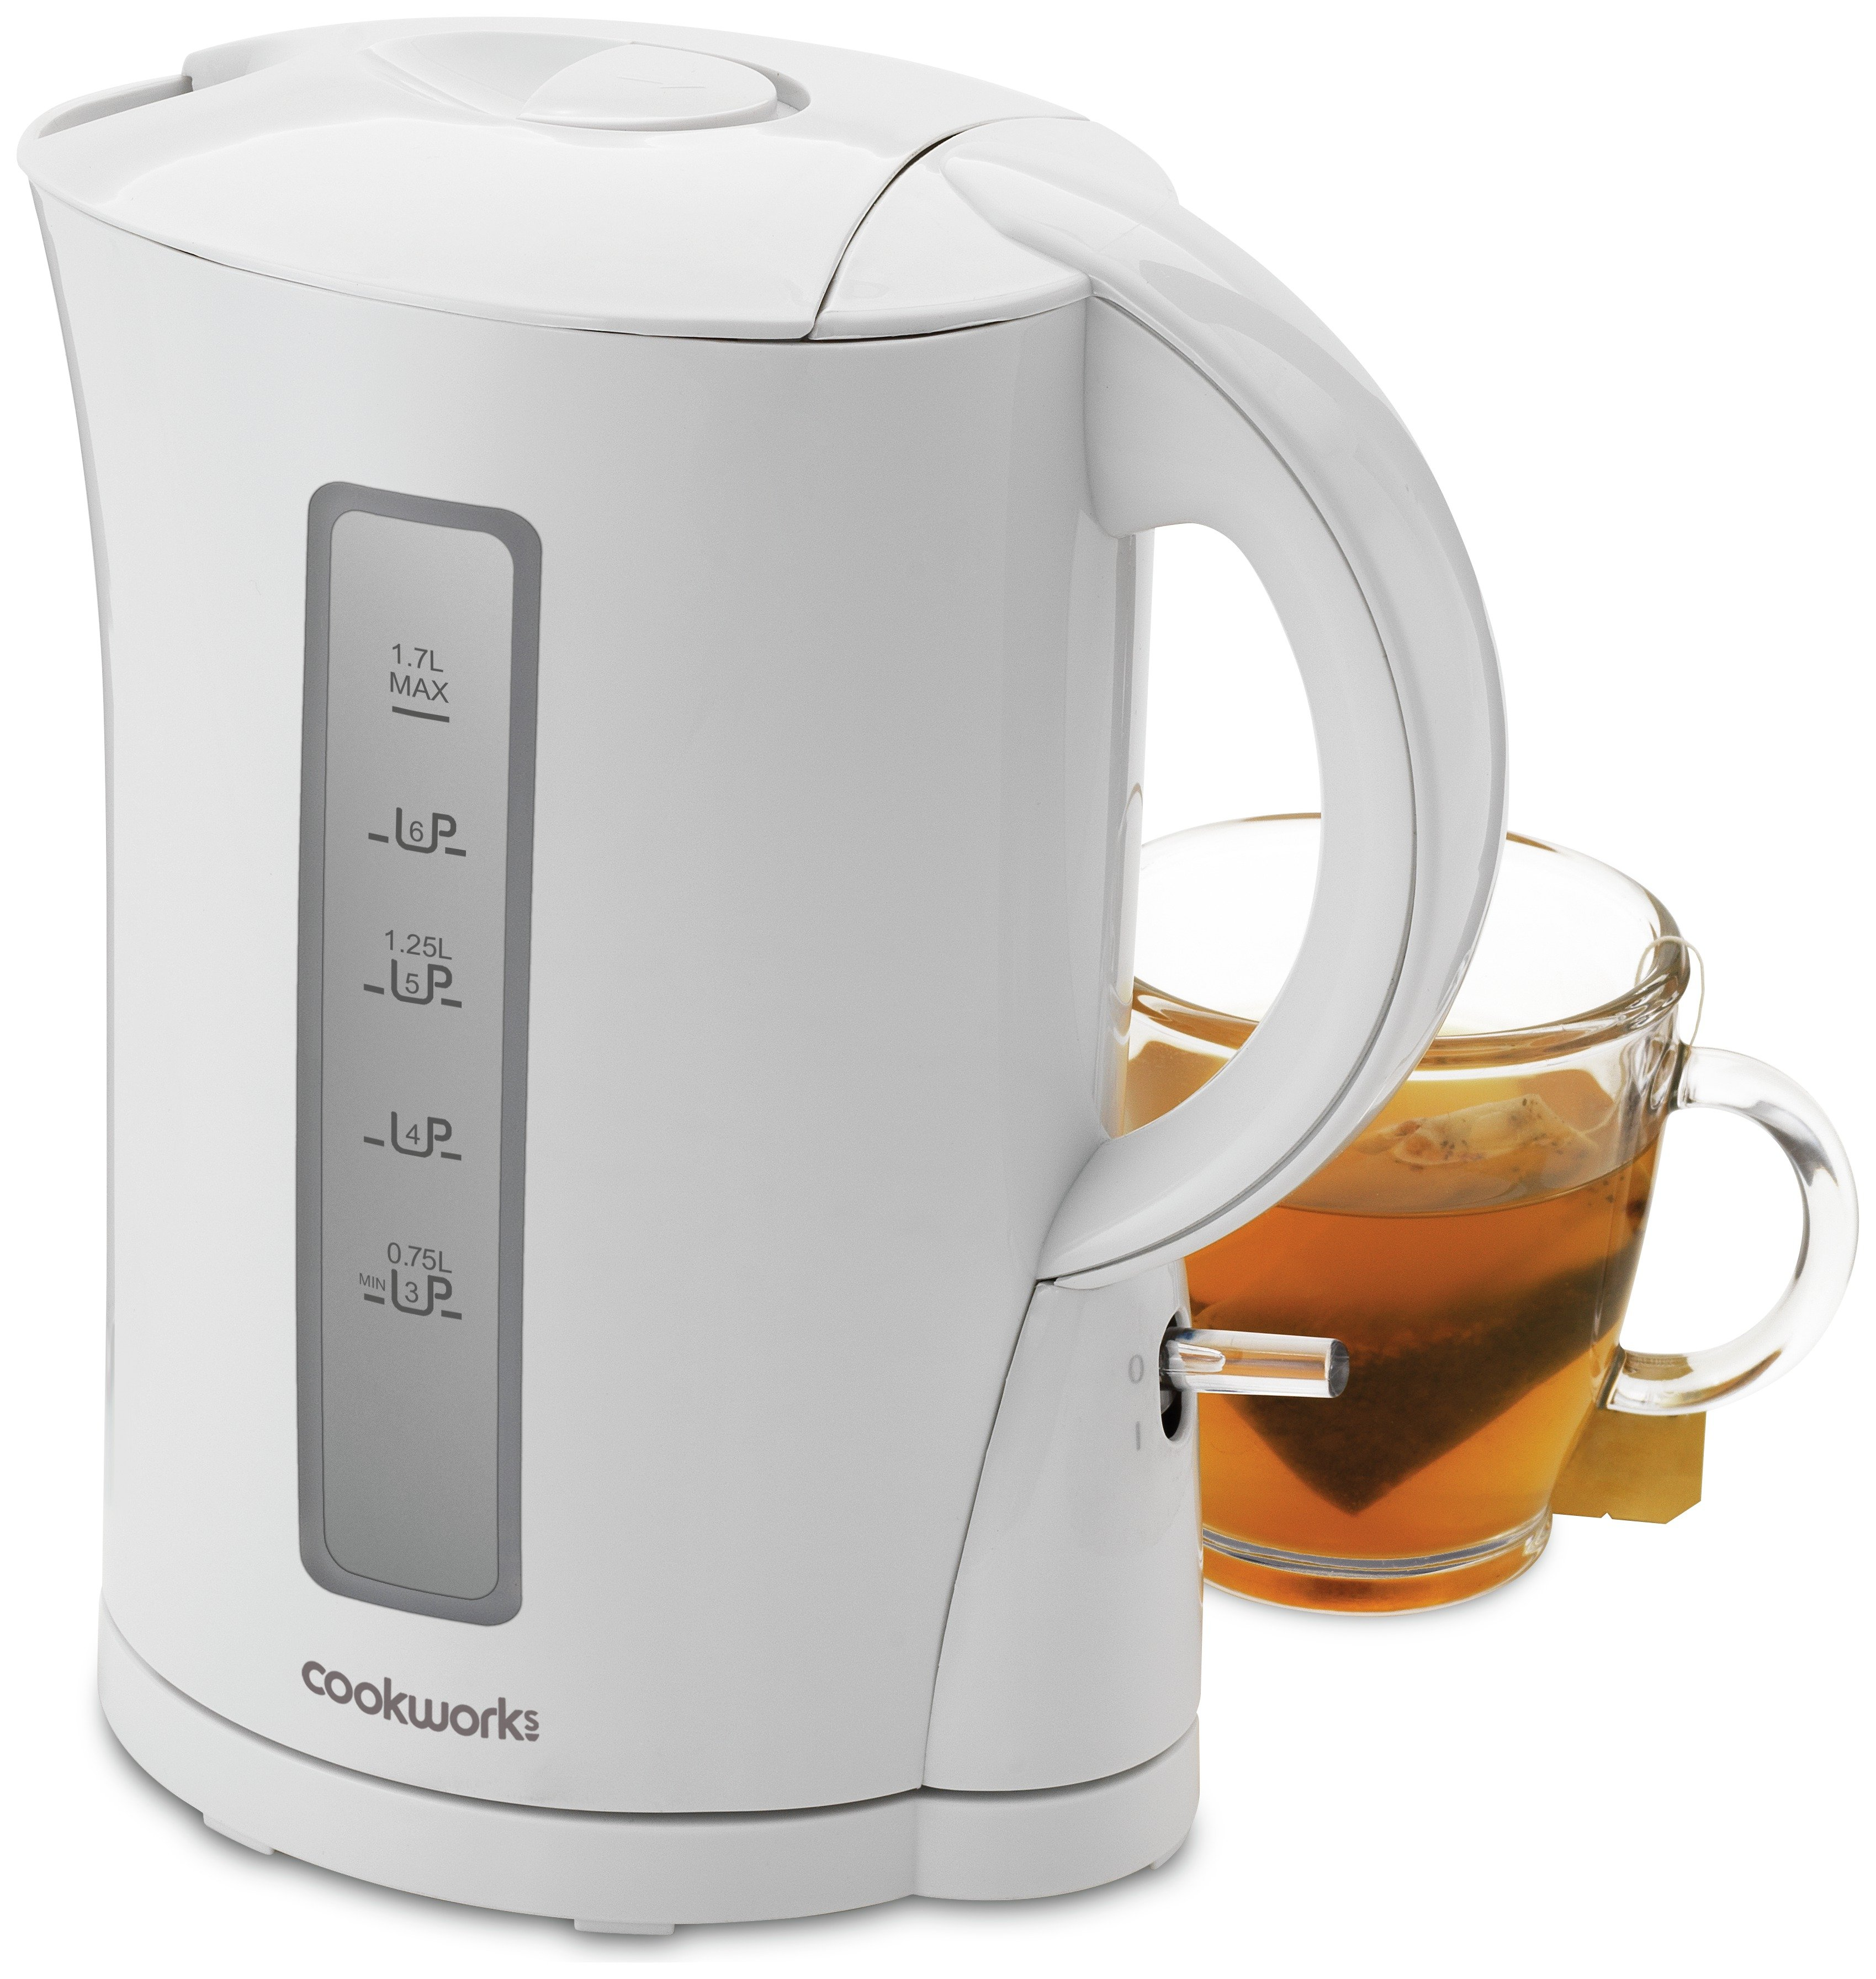 Cookworks Kettle - White